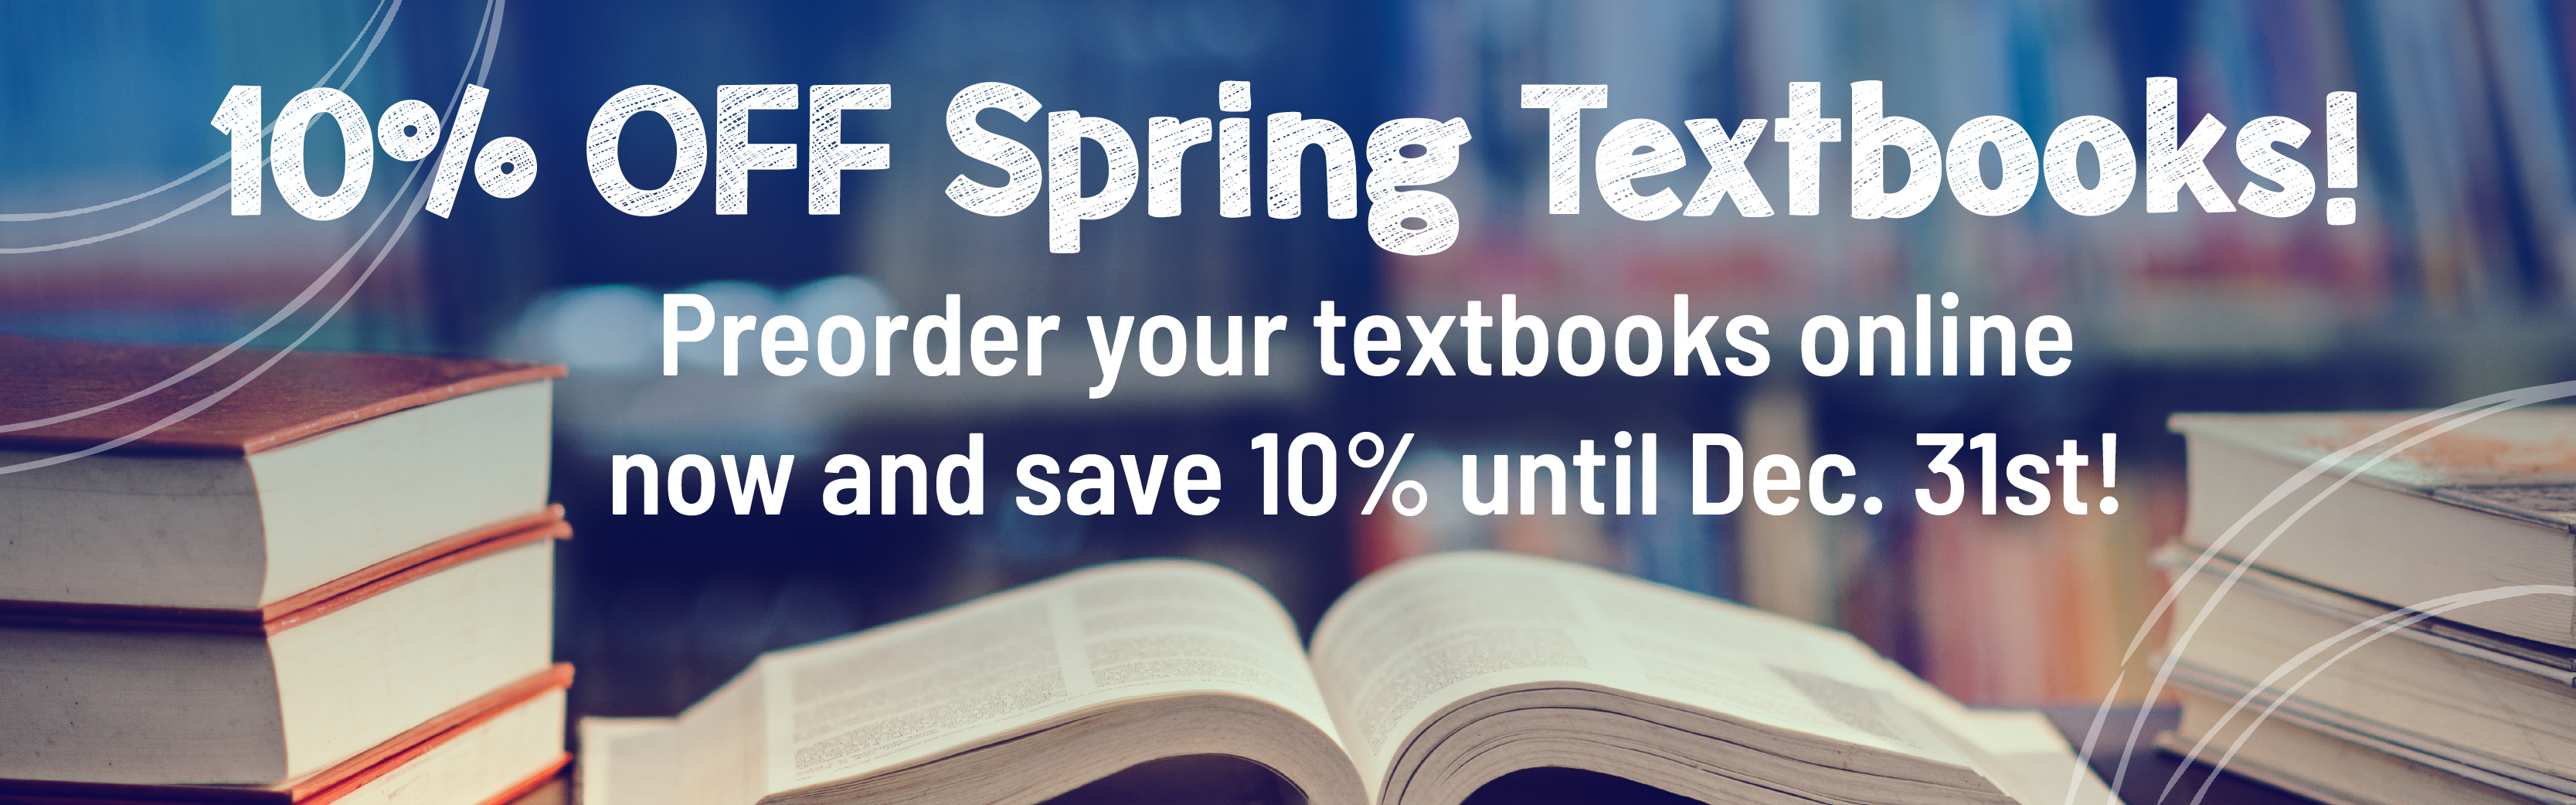 Preorder your textbooks online and get 10% off your Spring Textbooks until 12/31